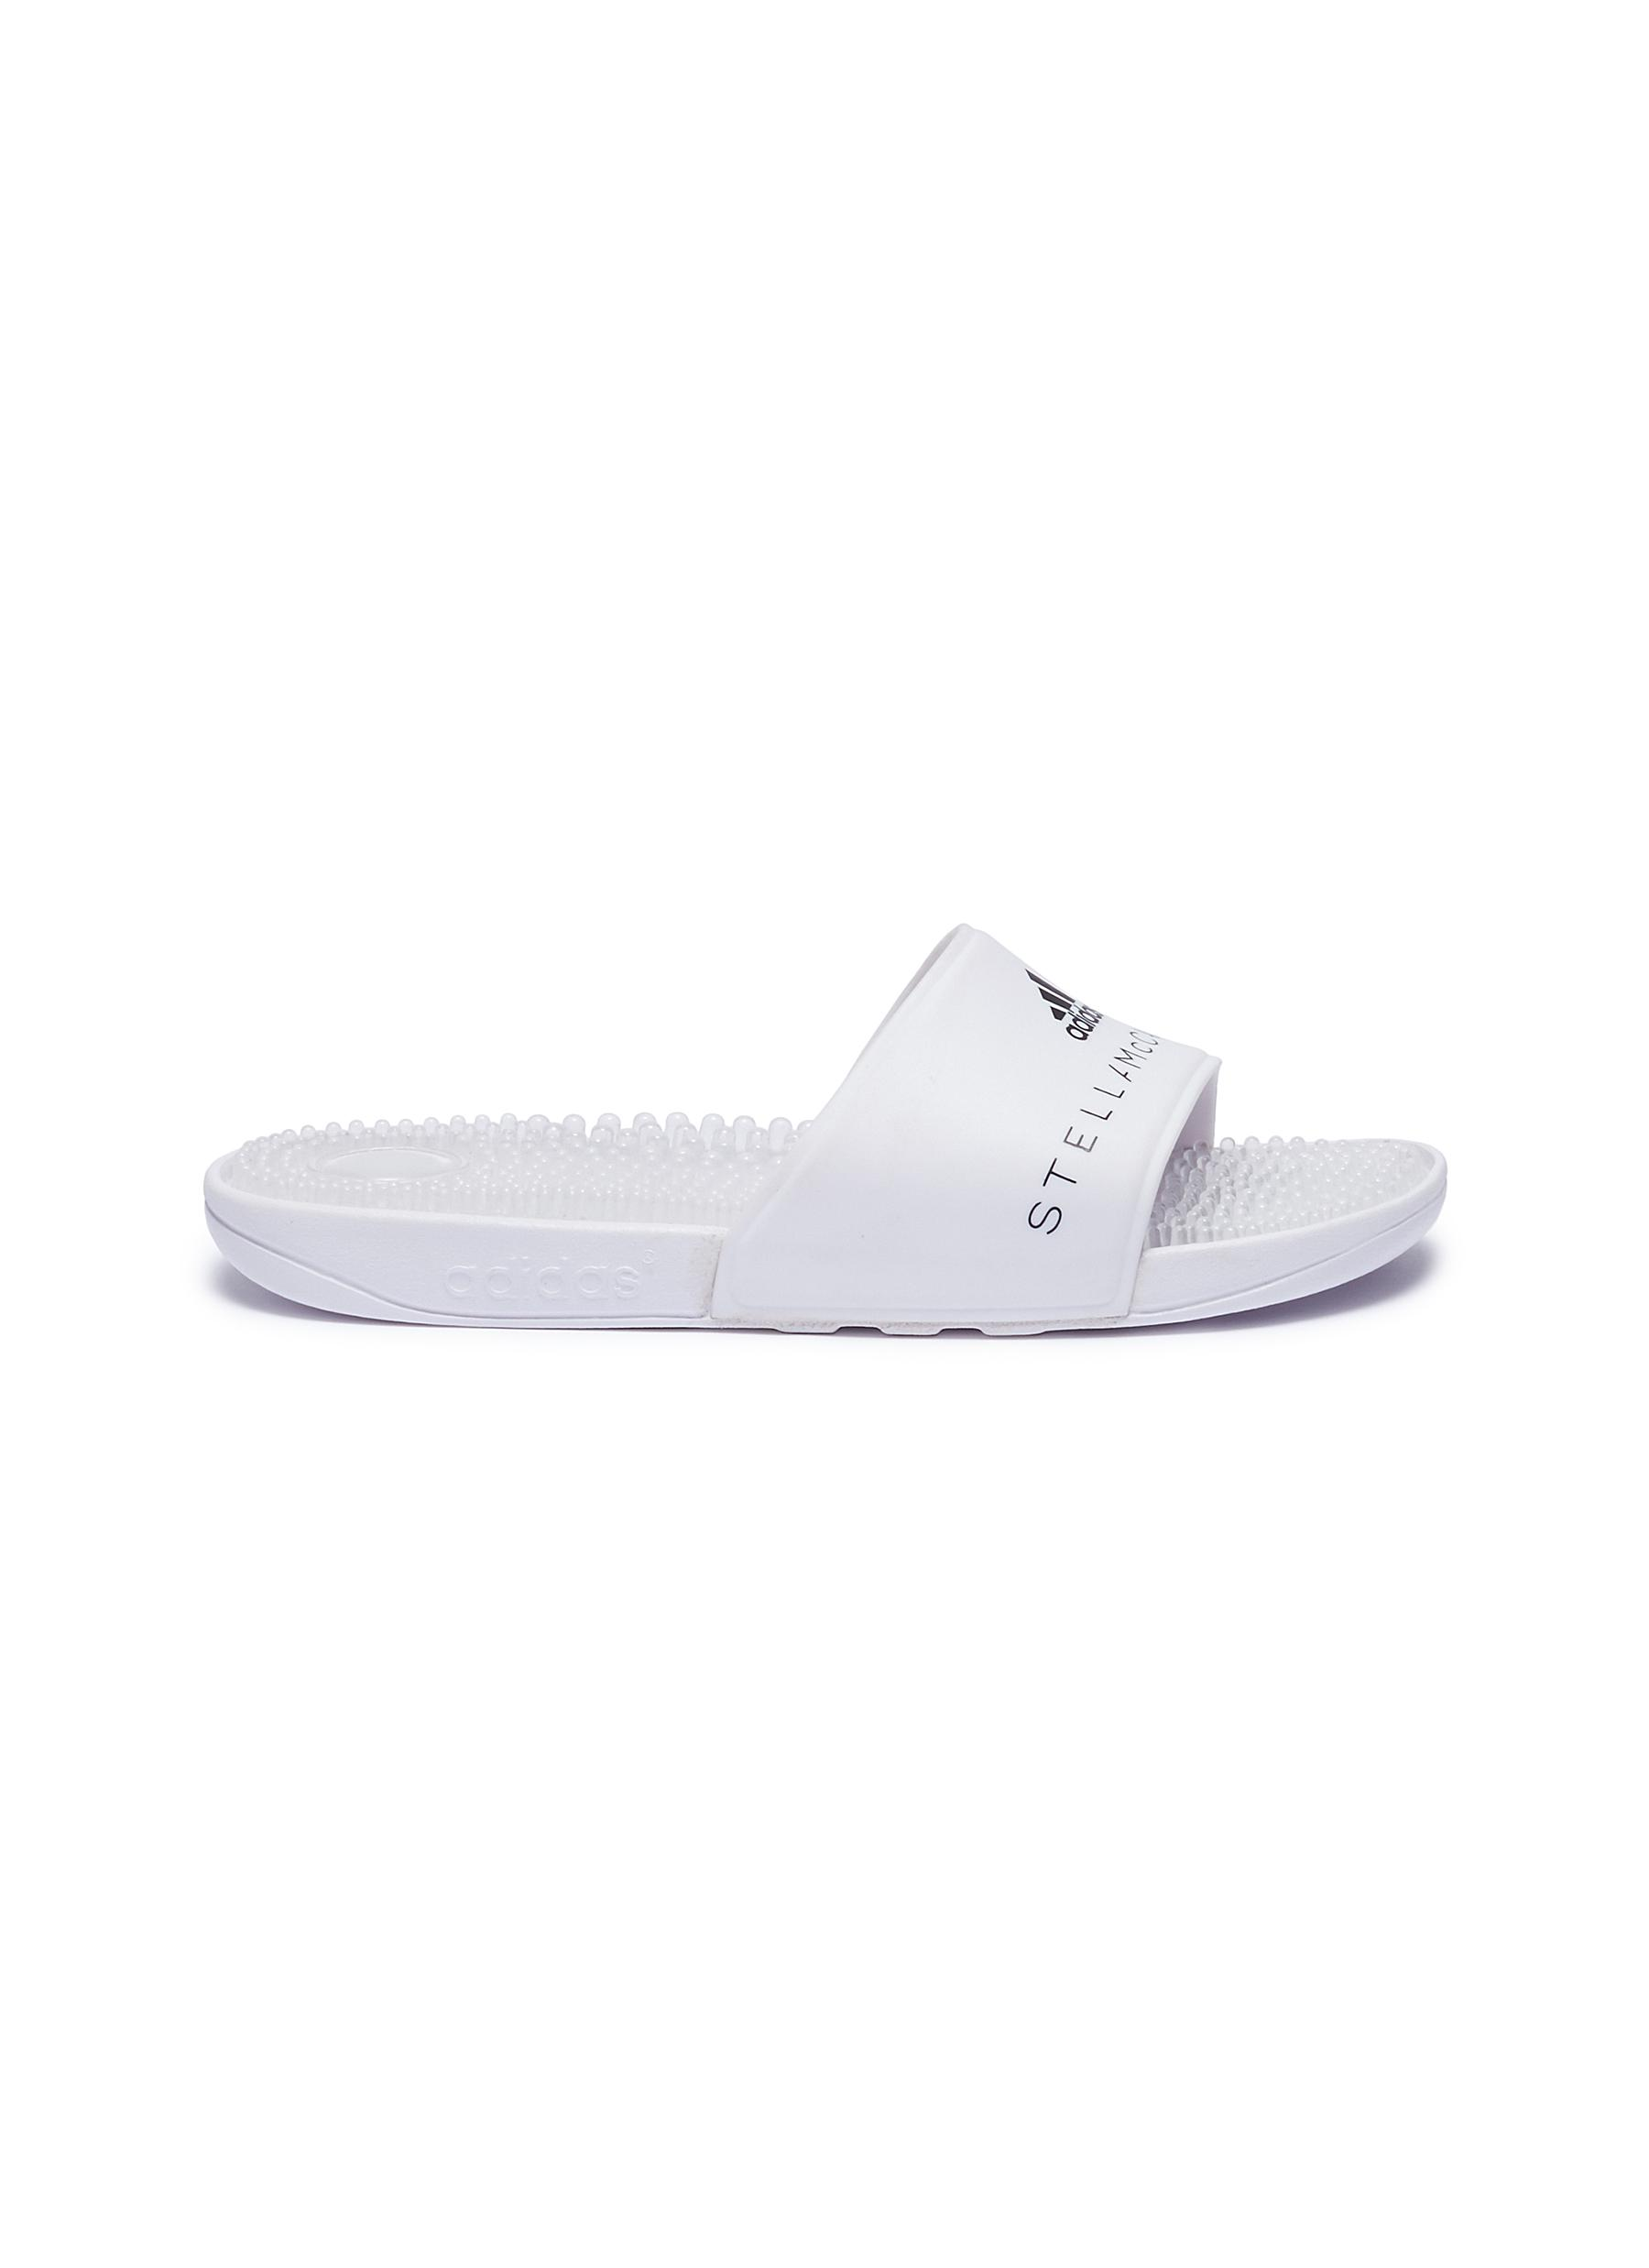 dfb25eaa32dd adidas by Stella McCartney.  Adissage  textured insole rubber slide sandals